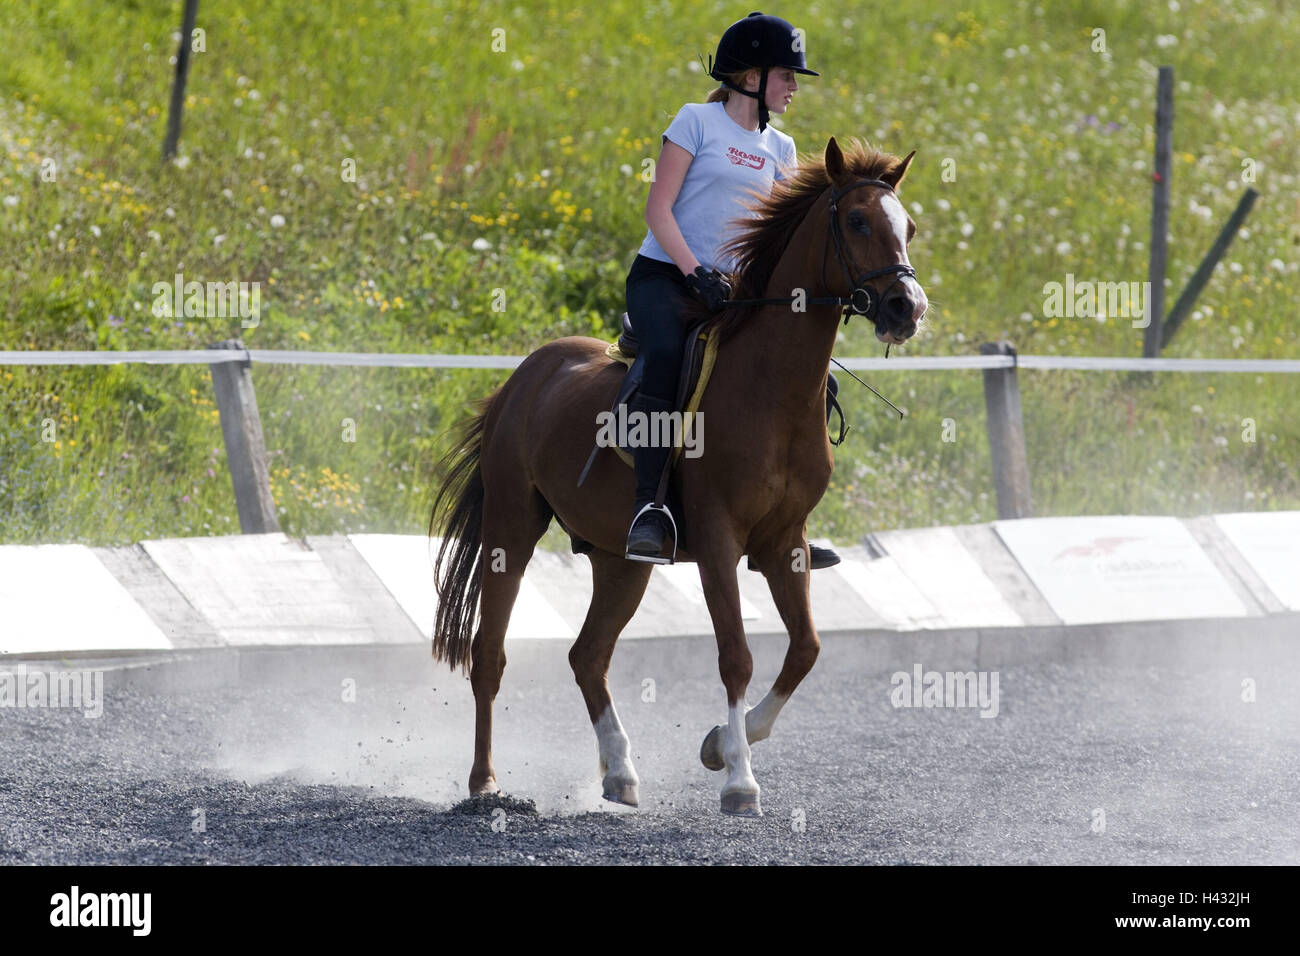 Riding space, girl, horse riding, sport, hobby, leisure time